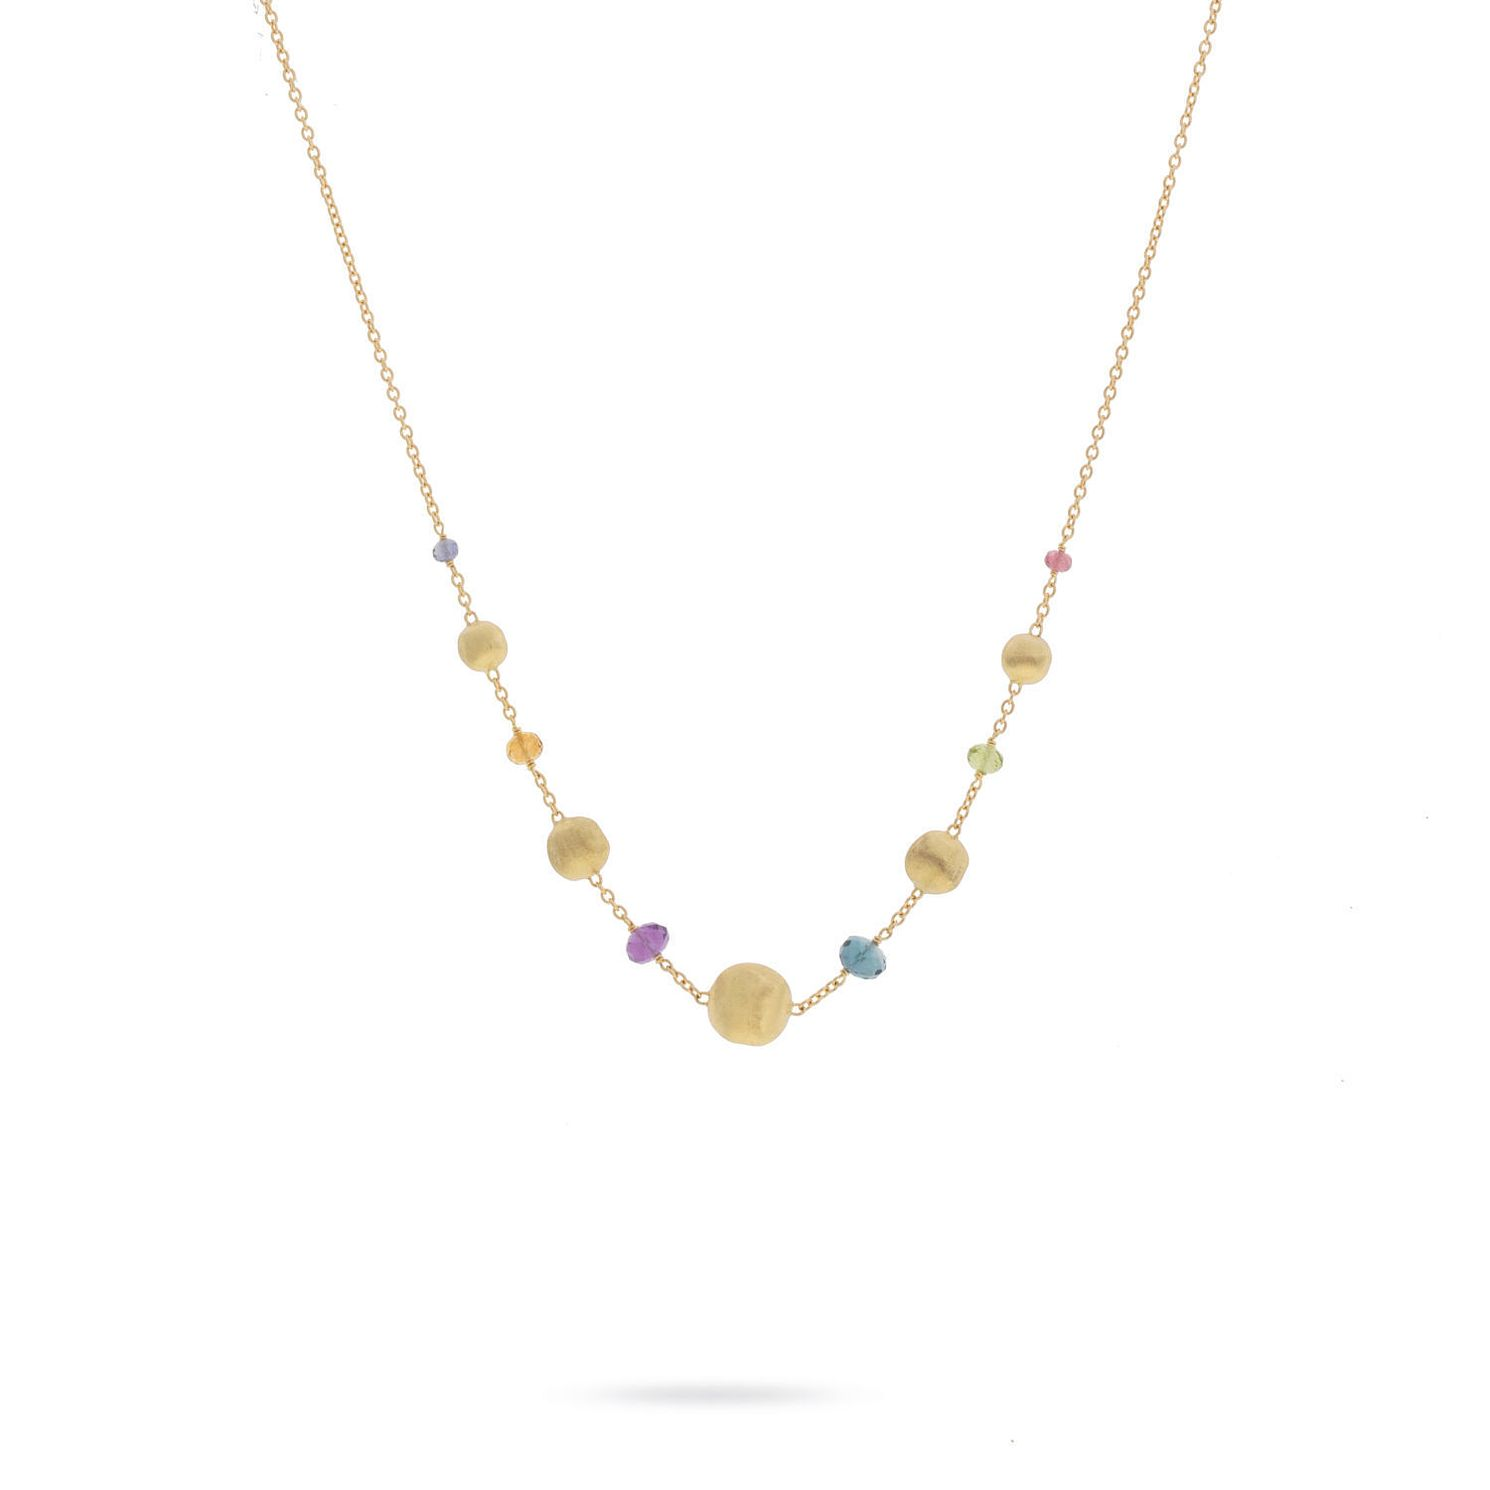 Marco Bicego 18ct Yellow Gold Africa Gemstone Necklace - Product number 8139210